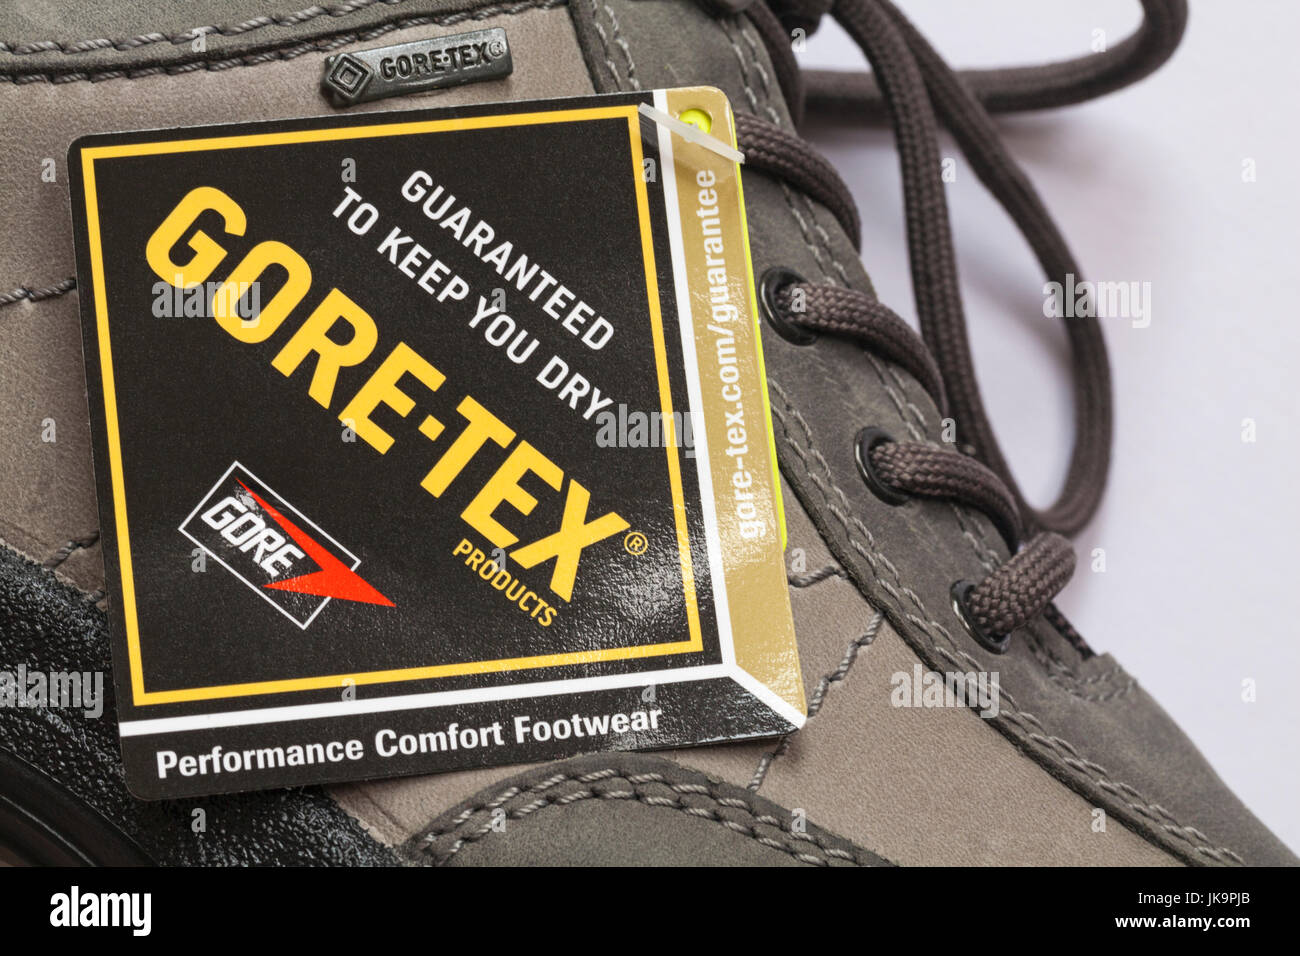 b392174629a Guaranteed to keep you dry label on Hotter Gore-tex walking shoes ...